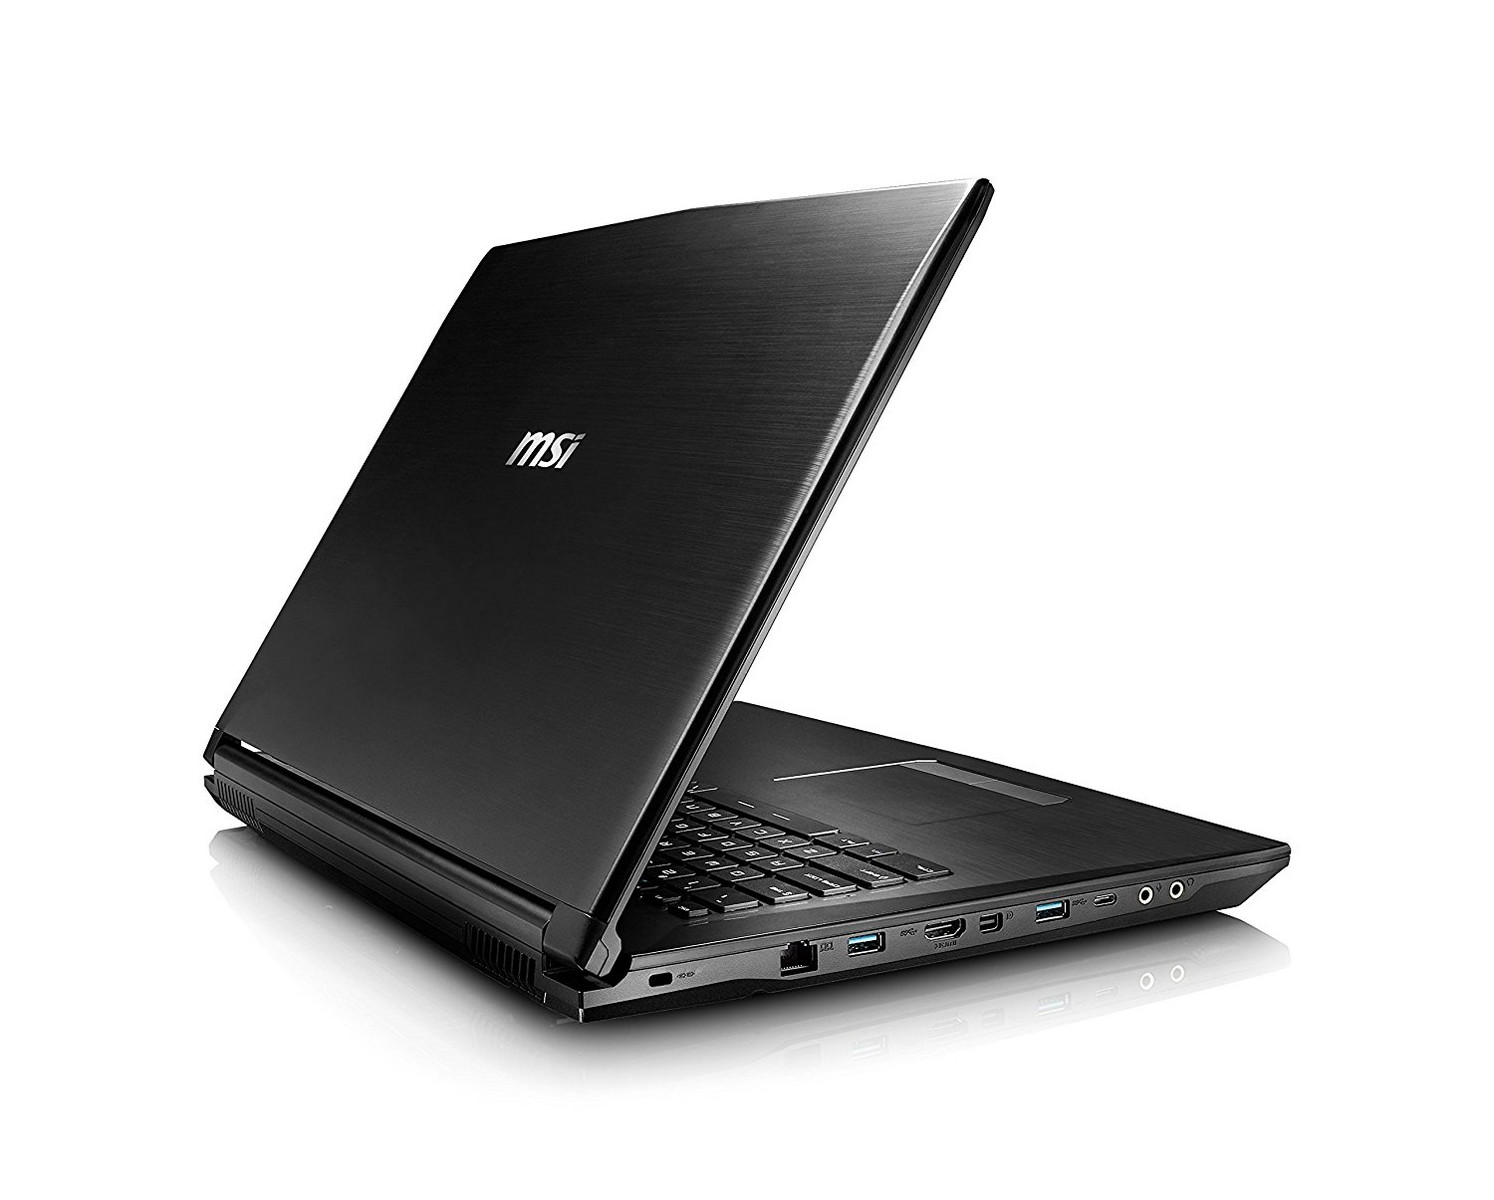 MSI CX72 6QD INTEL BLUETOOTH WINDOWS 8.1 DRIVER DOWNLOAD